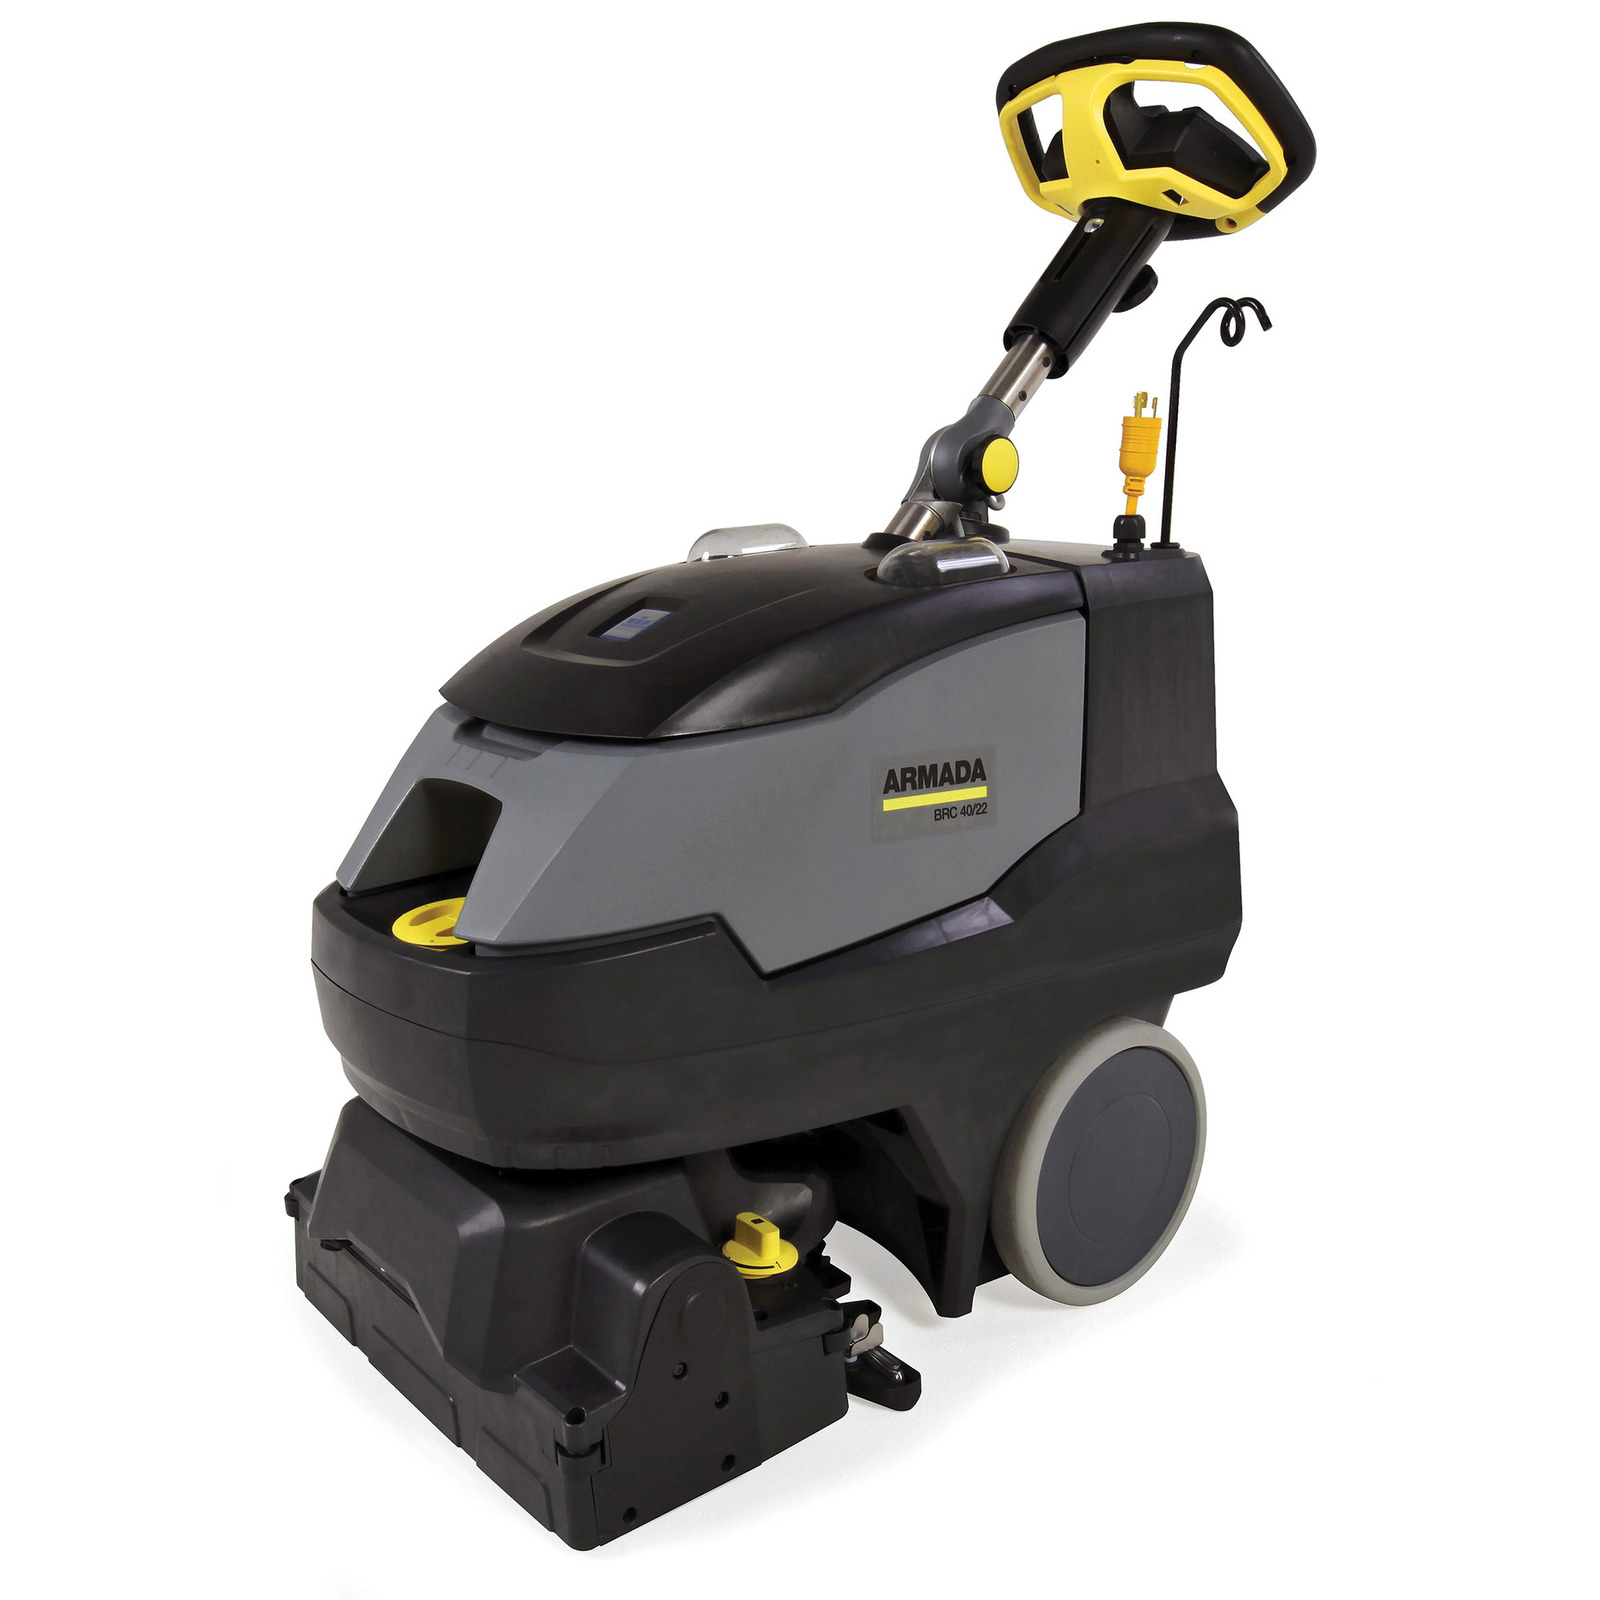 Karcher 1.008-060.0 Demo Windsor Armada BRC 40/22 Carpet Cleaning Machine 90Day Warranty Self Contained Steerable Encap 6 Gal 16inch